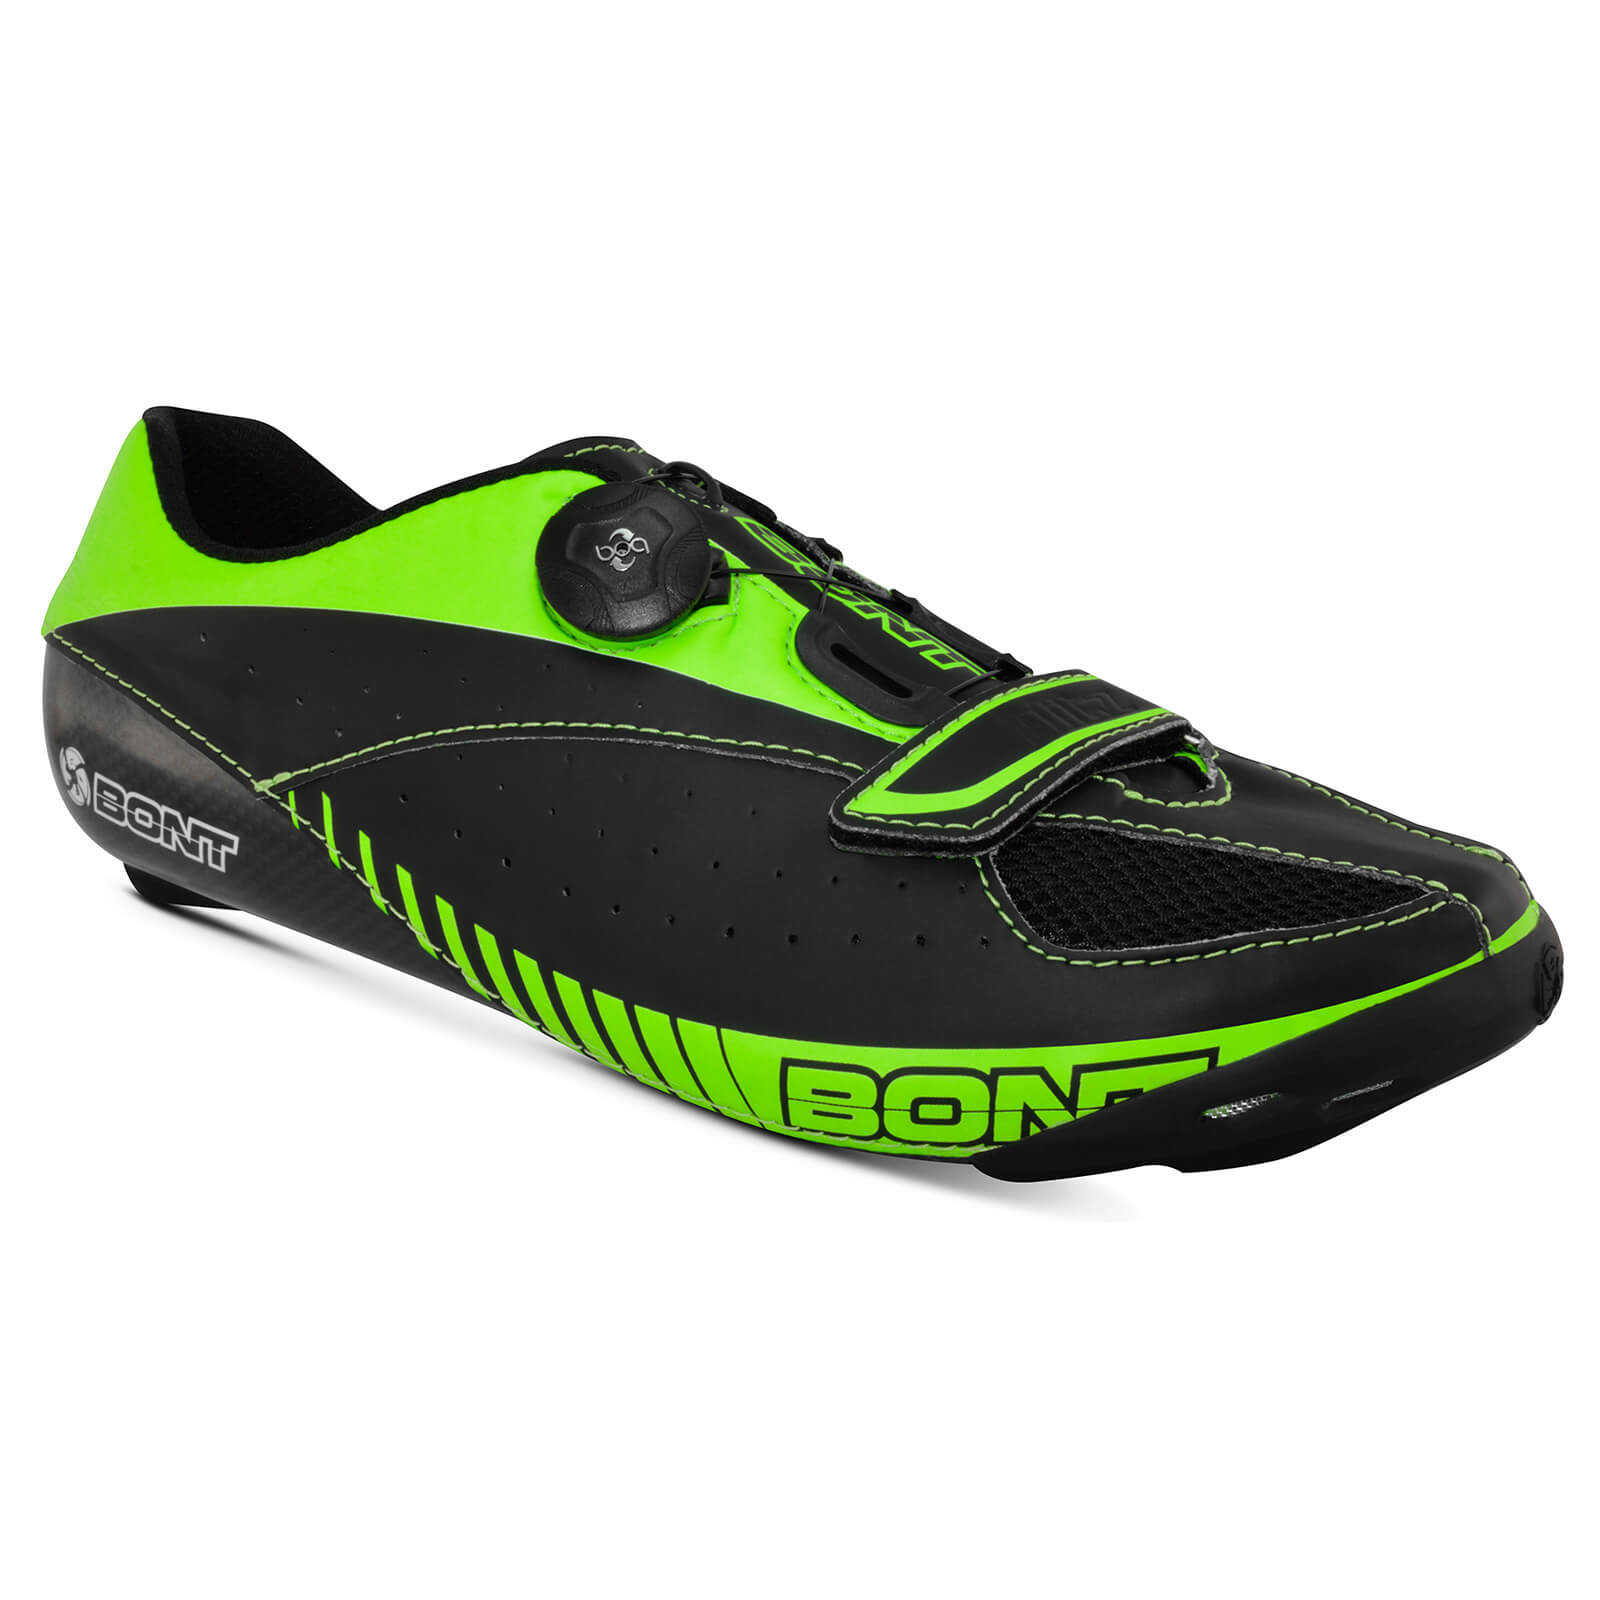 Bont Vaypor S Road Shoes - Eu 46 - Standard Fit - White/gold